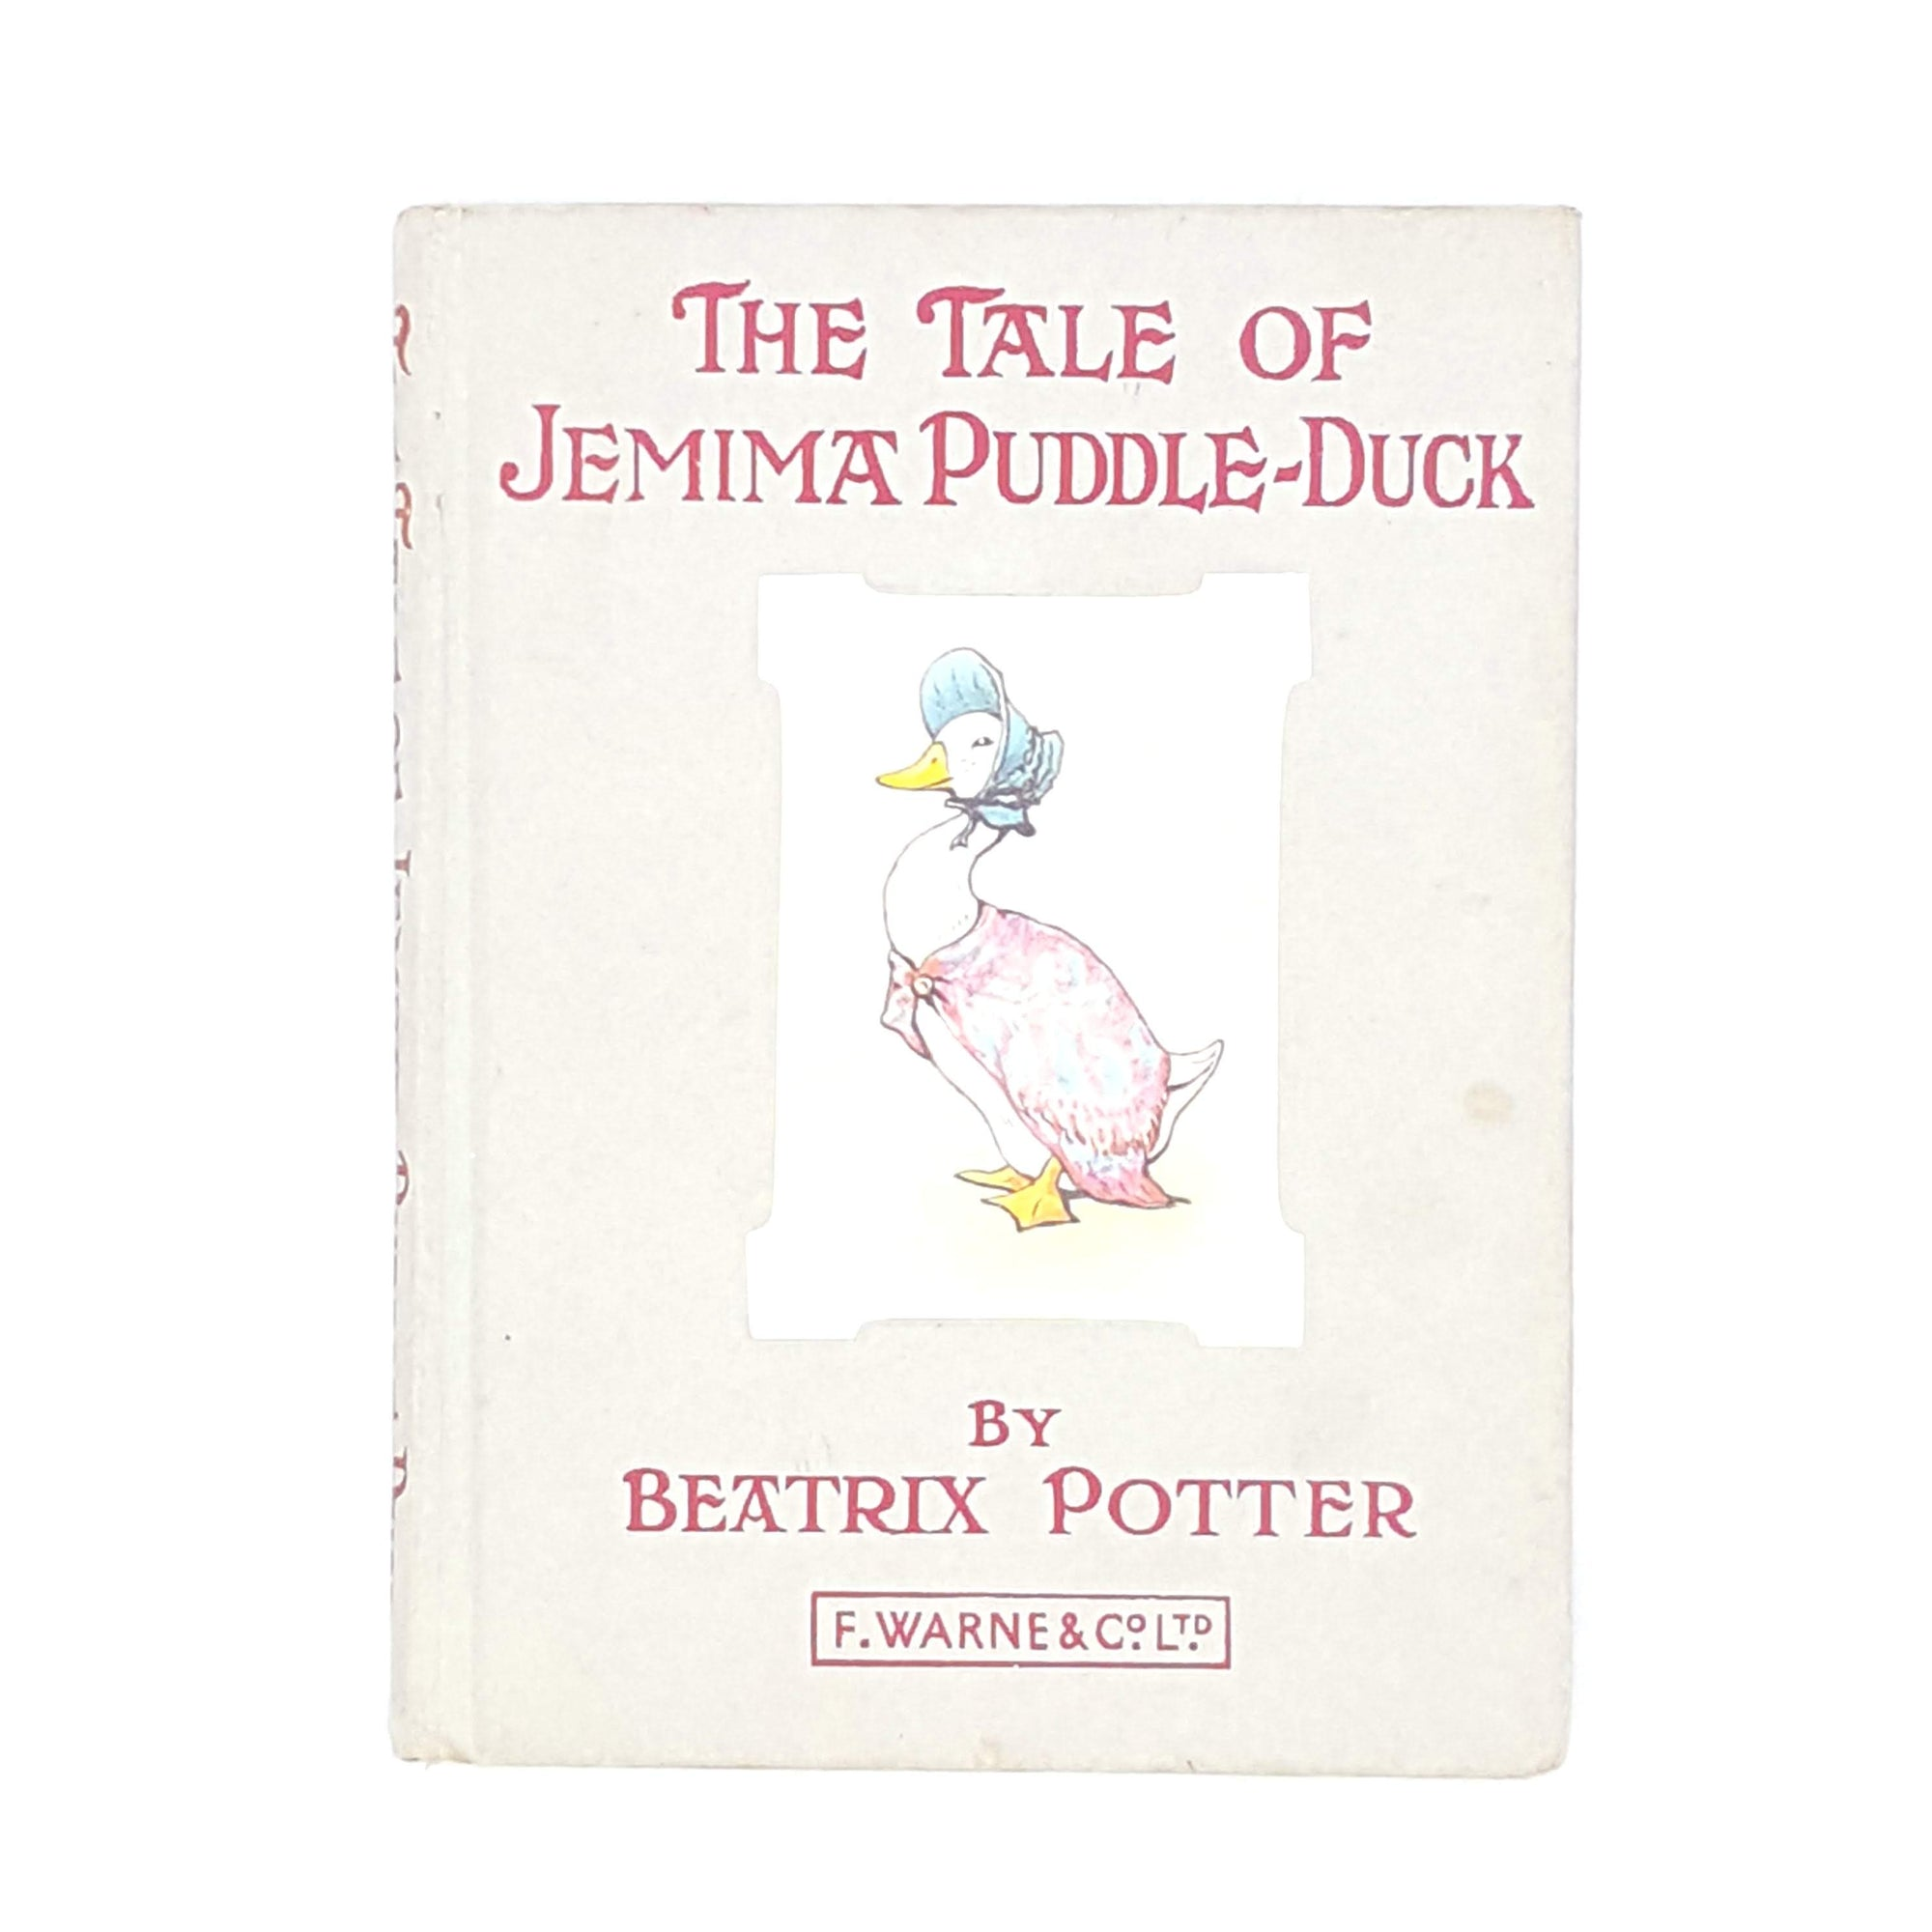 Beatrix Potter's The Tale of Jemima Puddle-Duck, grey cover